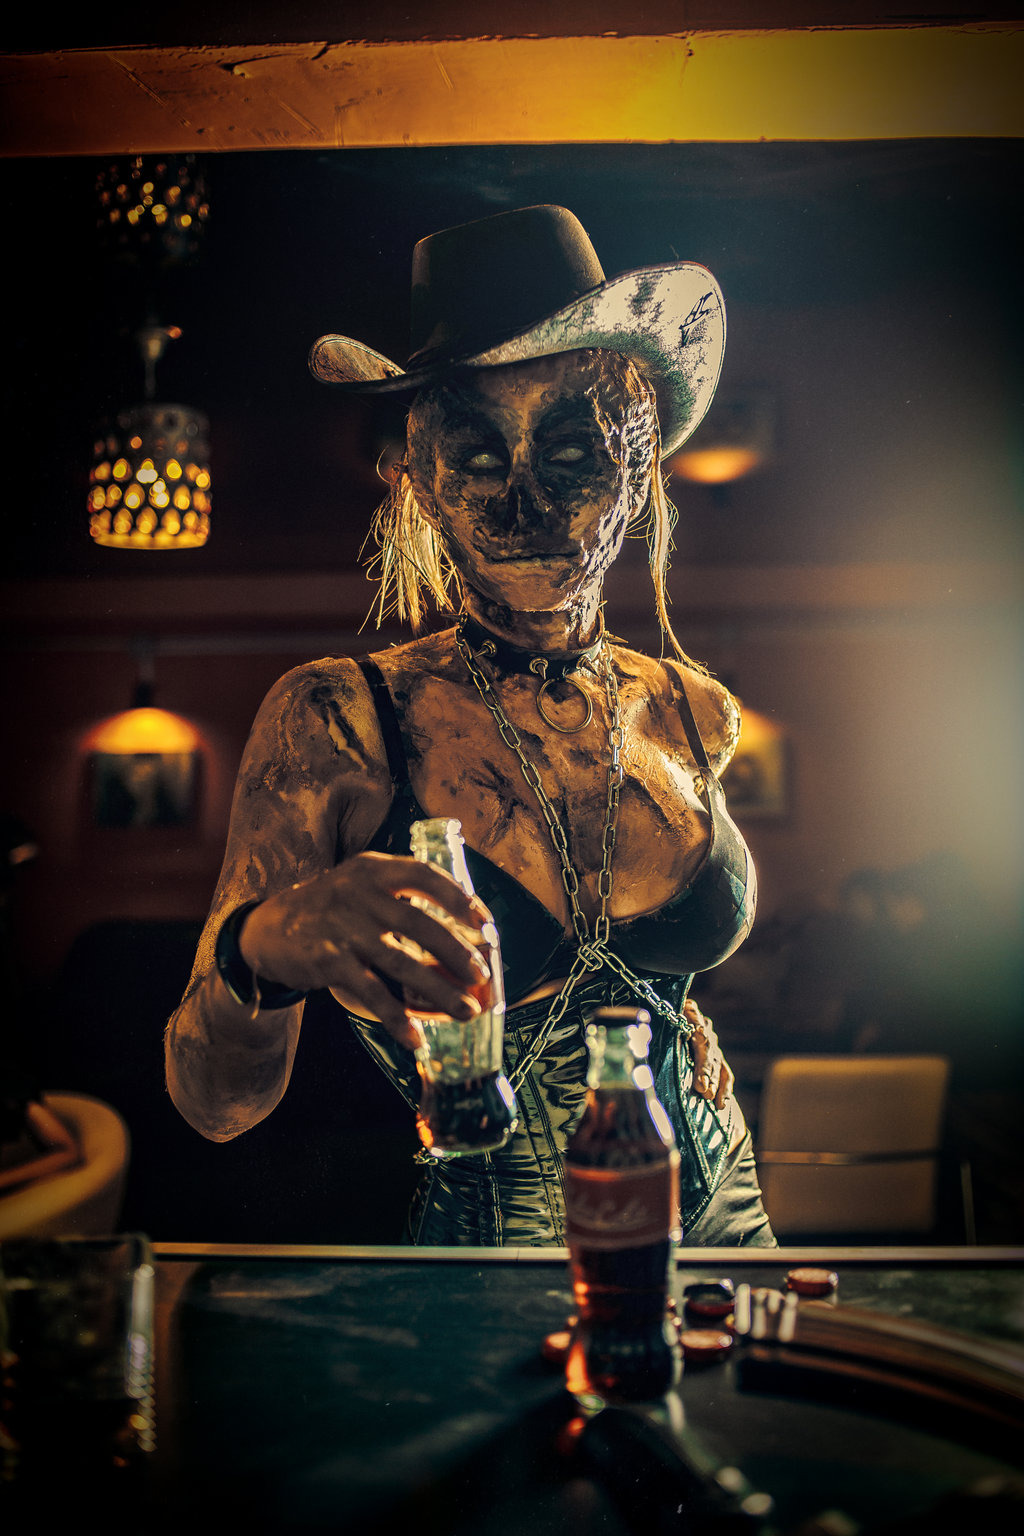 fallout_new_vegas___beatrix_russell_cosplay_by_elenasamko-d9f4997.jpg